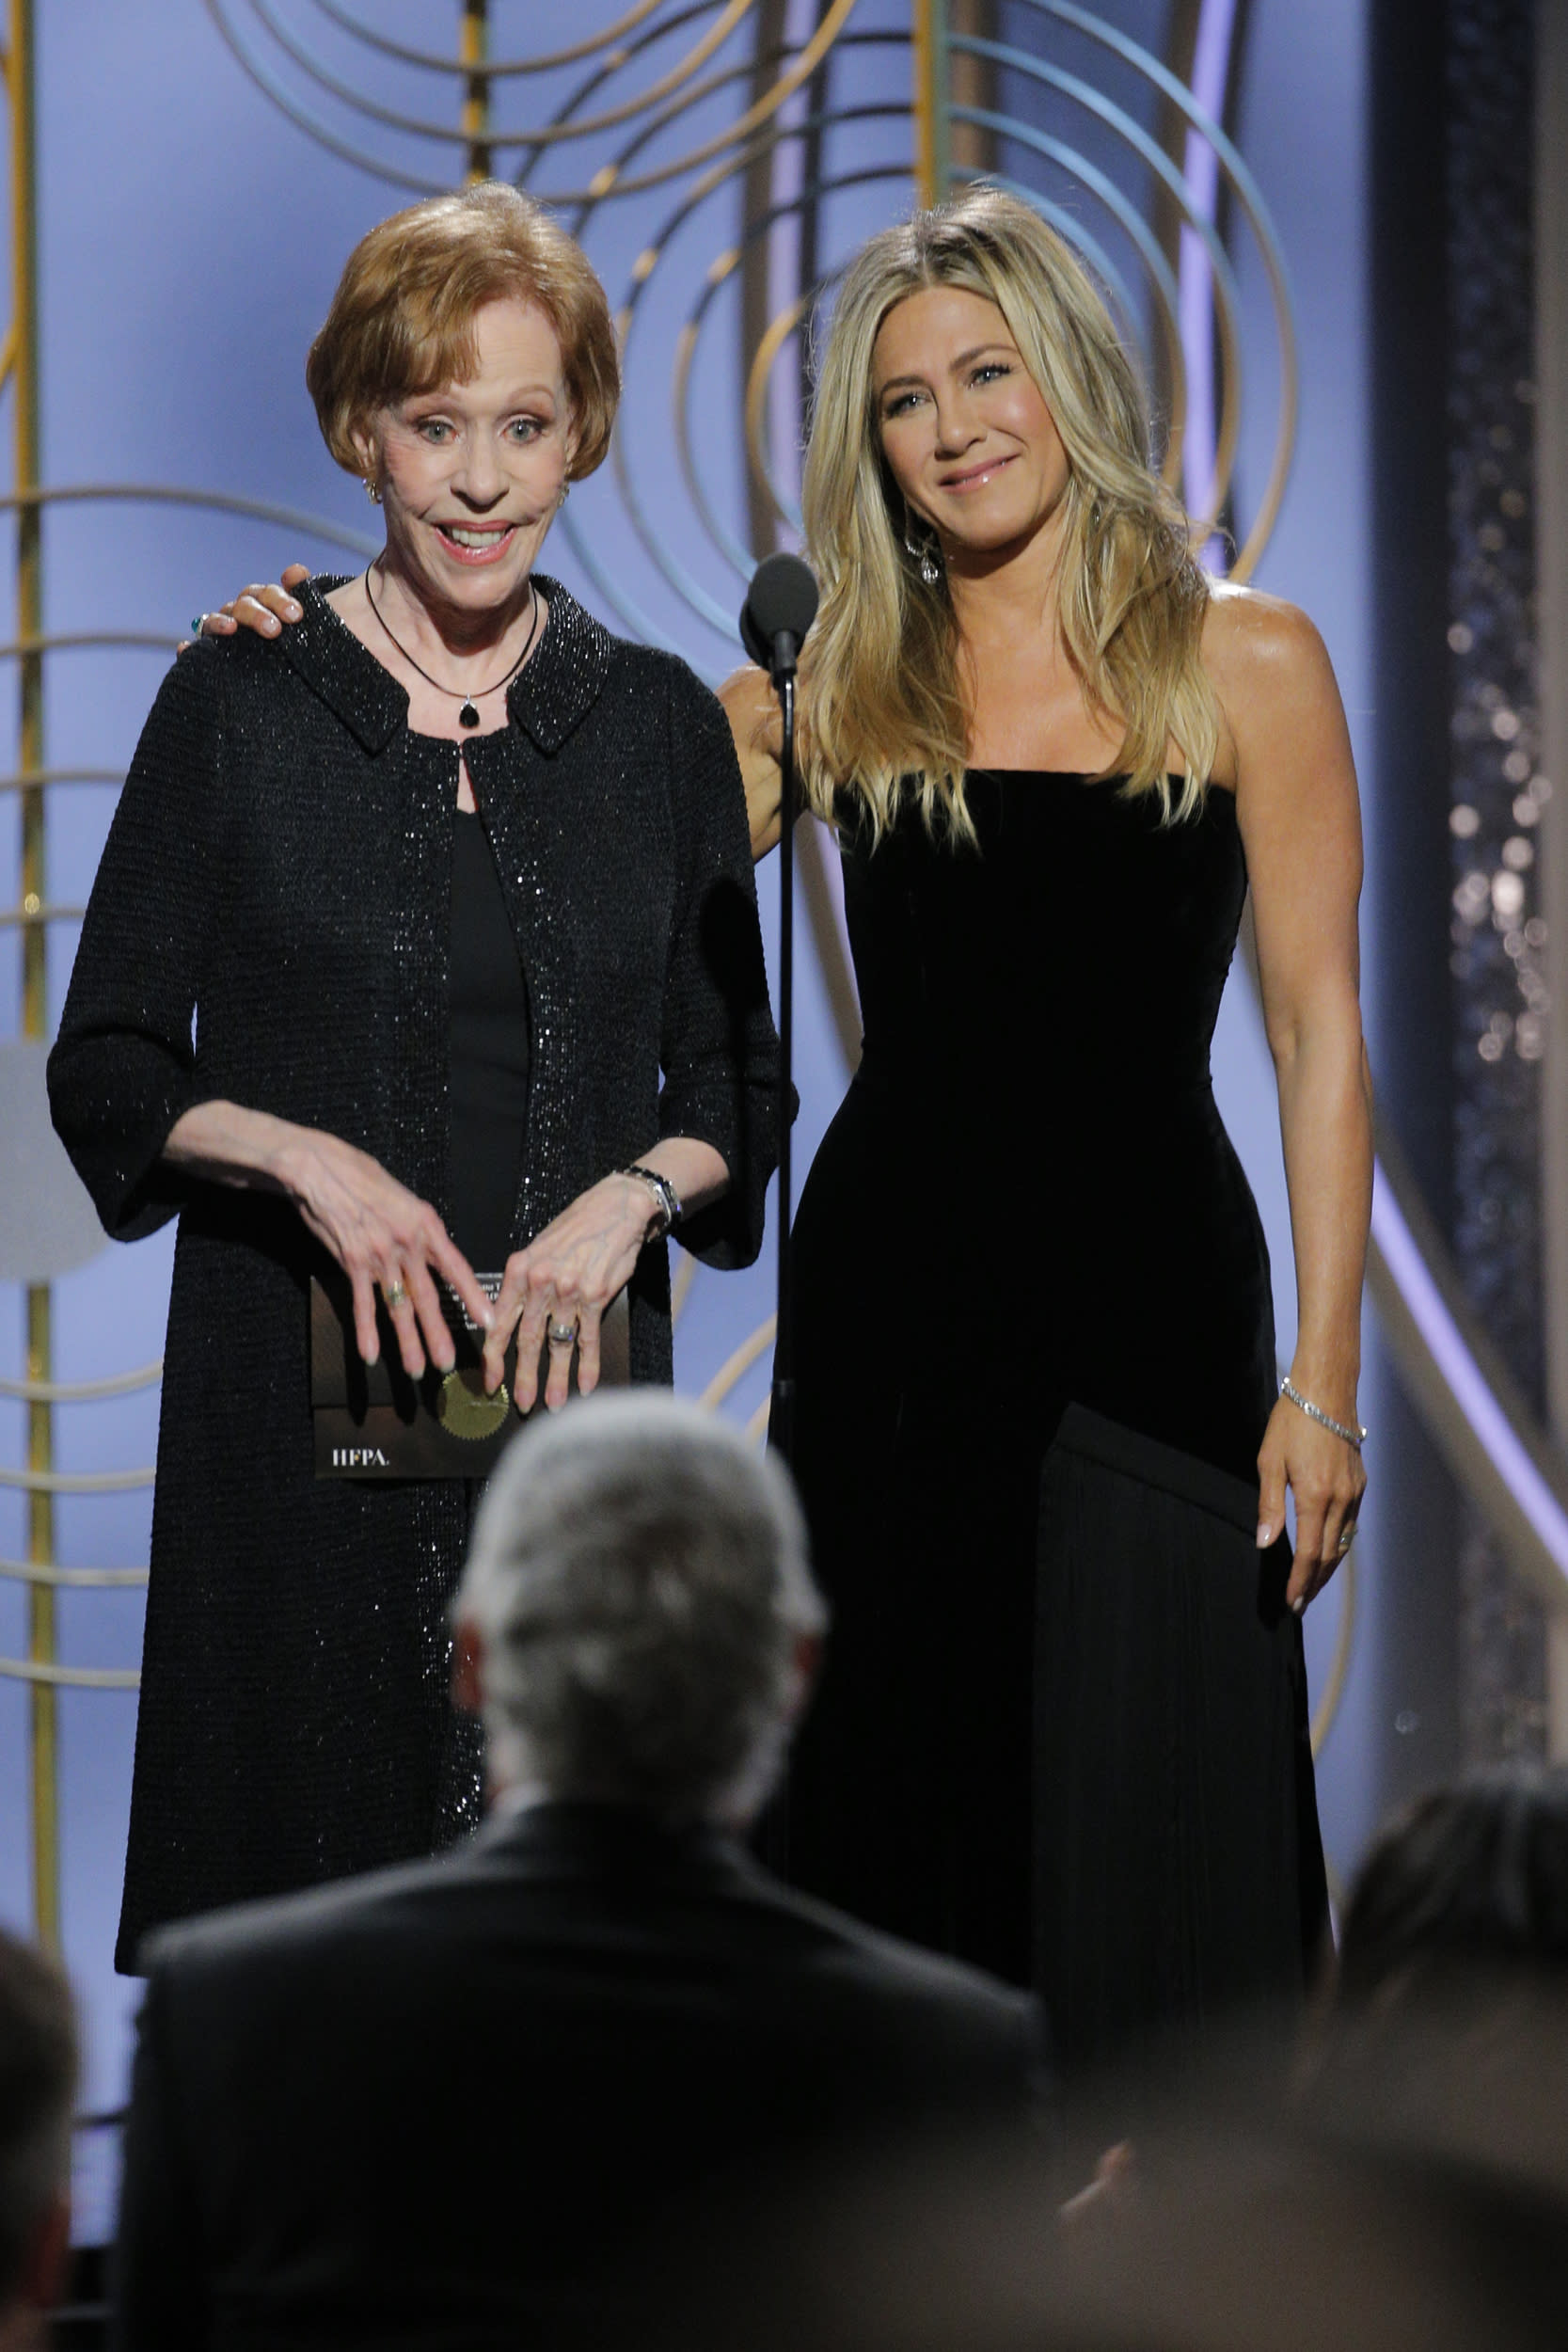 BEVERLY HILLS, CA - JANUARY 07:  In this handout photo provided by NBCUniversal,  Presenters Carol Burnett and Jennifer Aniston onstage during the 75th Annual Golden Globe Awards at The Beverly Hilton Hotel on January 7, 2018 in Beverly Hills, California.  (Photo by Paul Drinkwater/NBCUniversal via Getty Images)